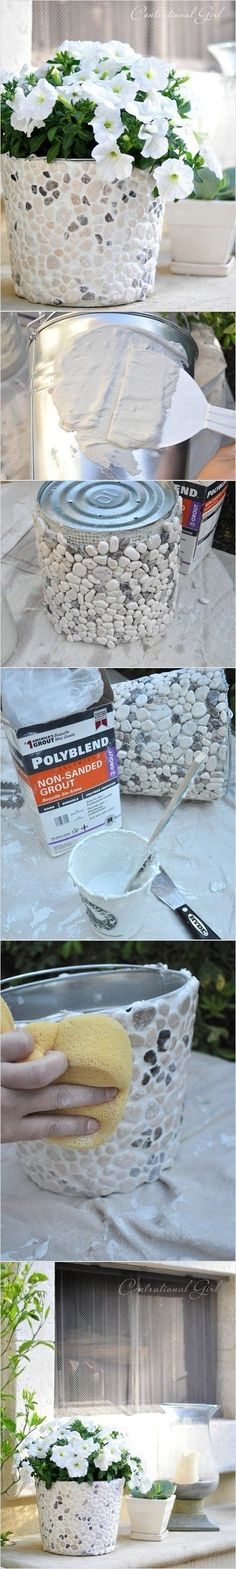 ... diy mosaic planter